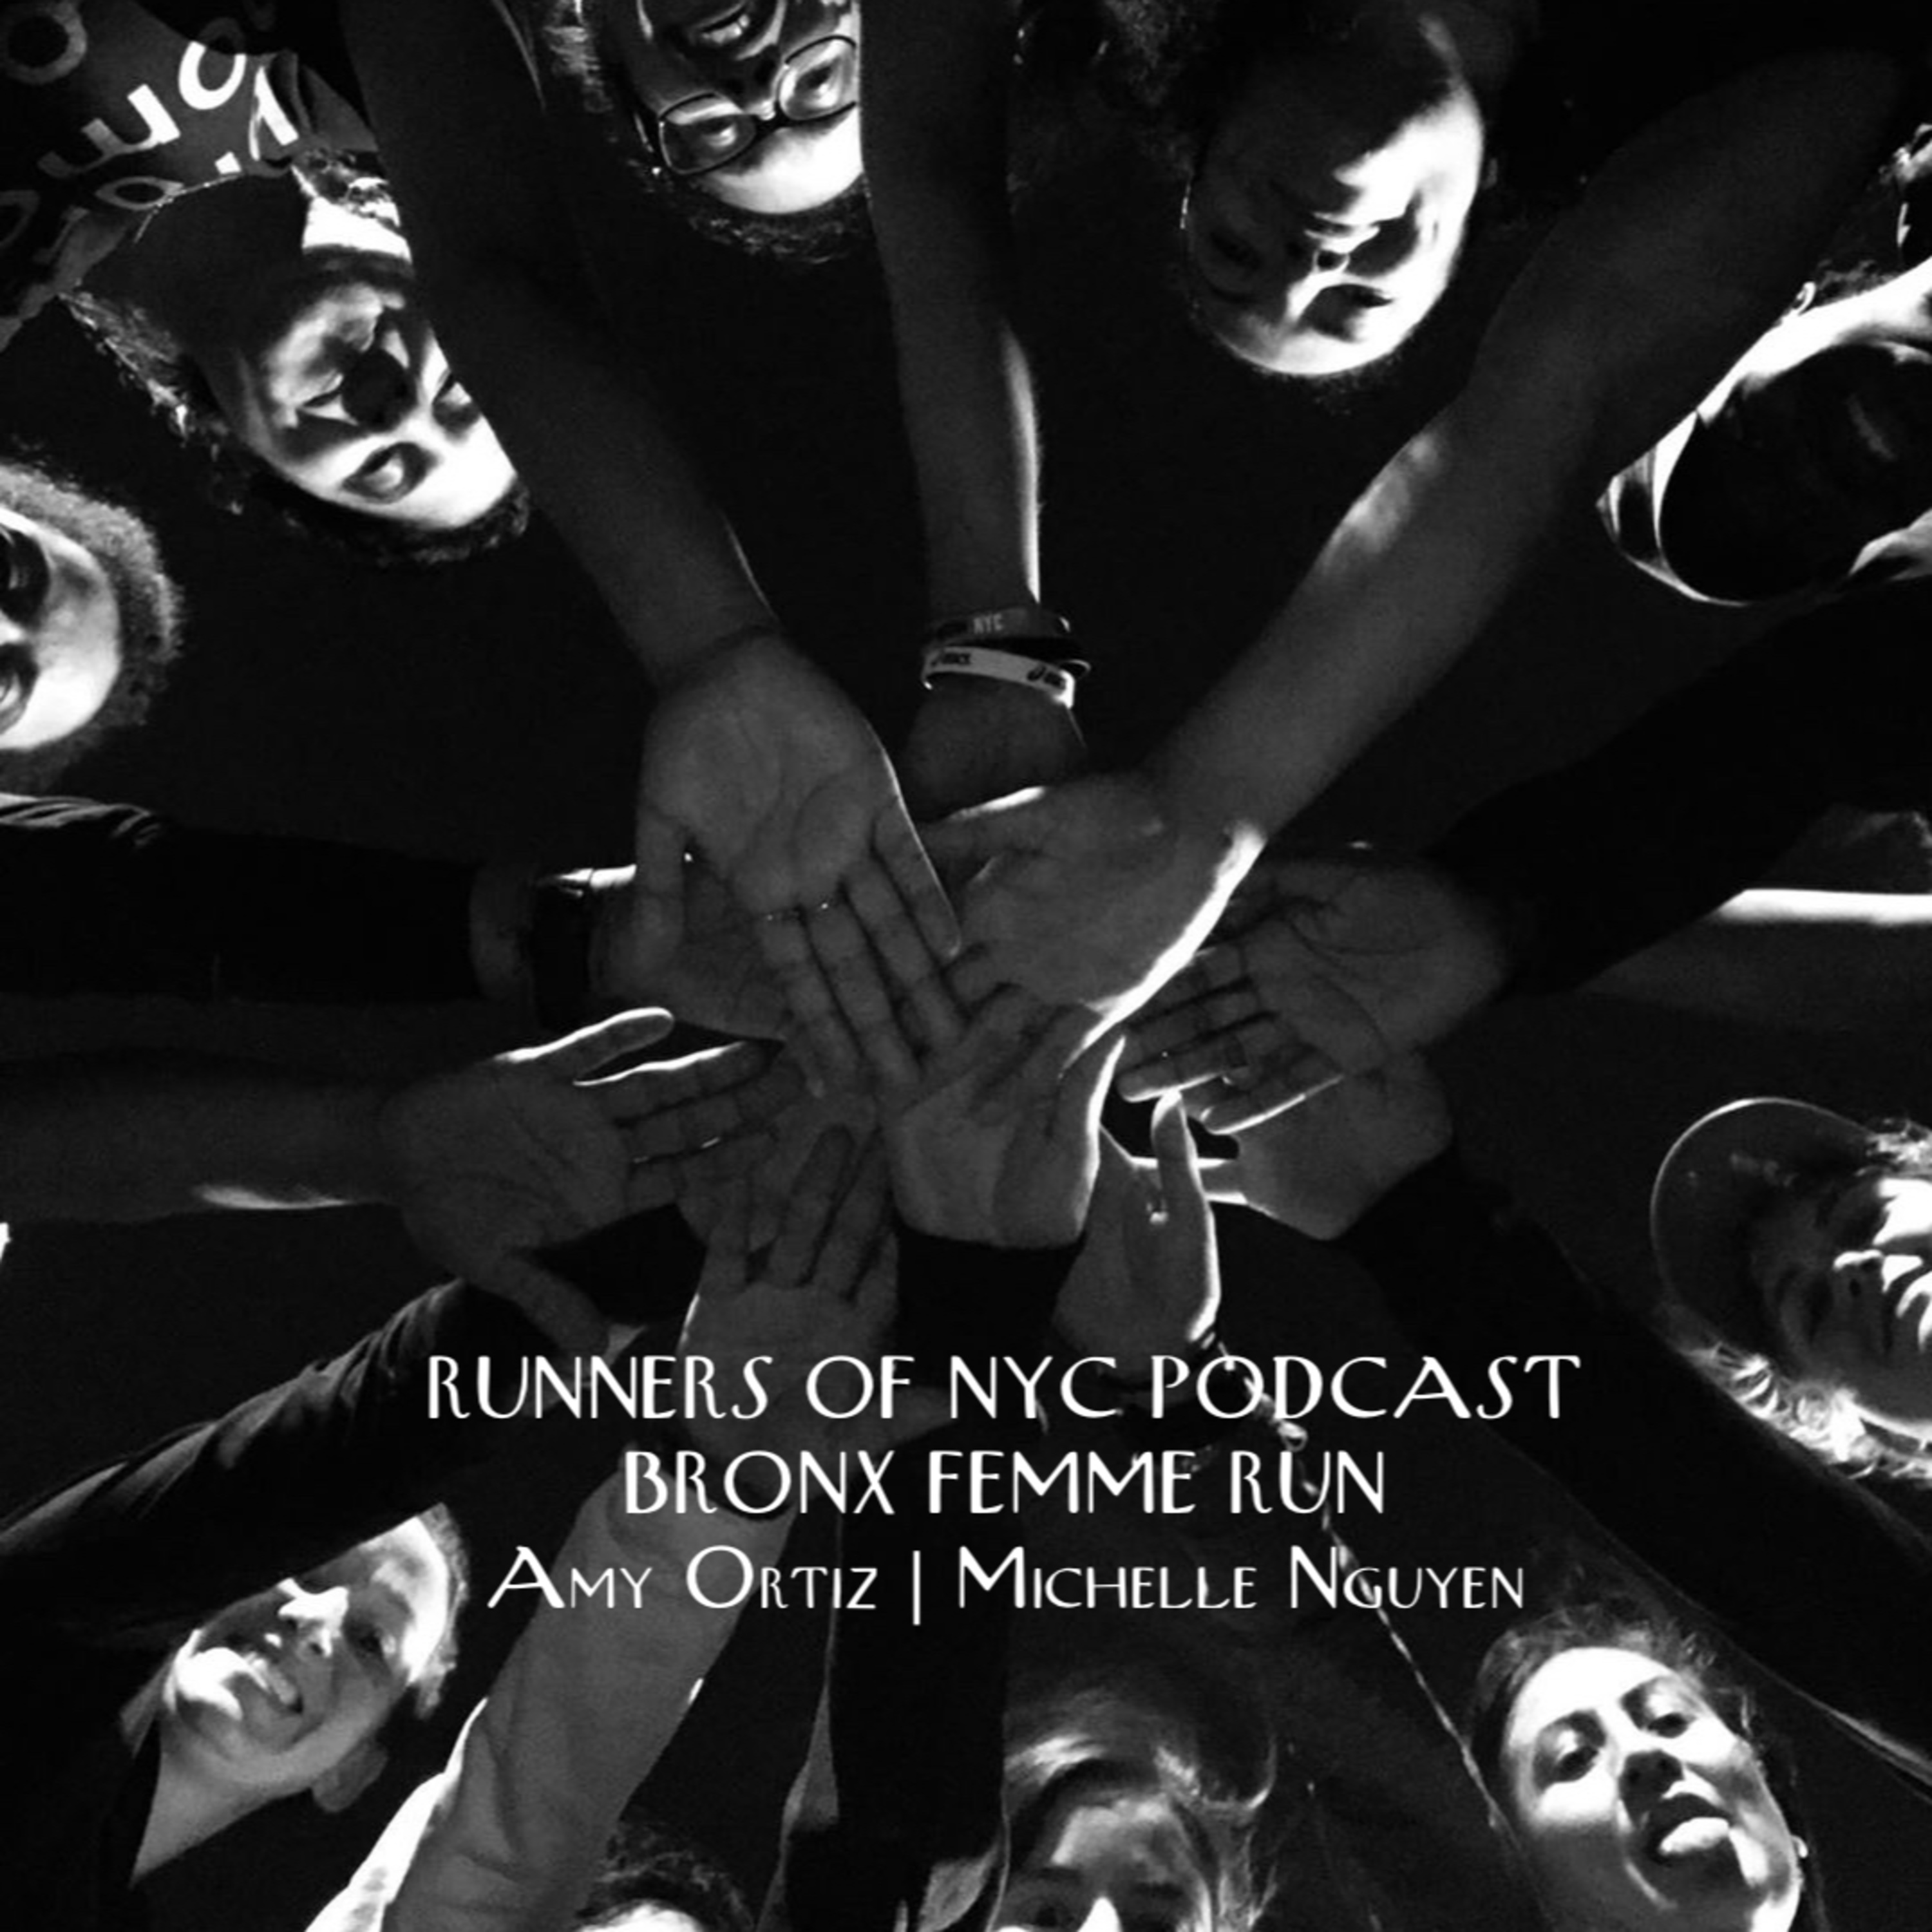 Episode 46 – Amy Ortiz and Michelle Nguyen of Bronx Femme Run